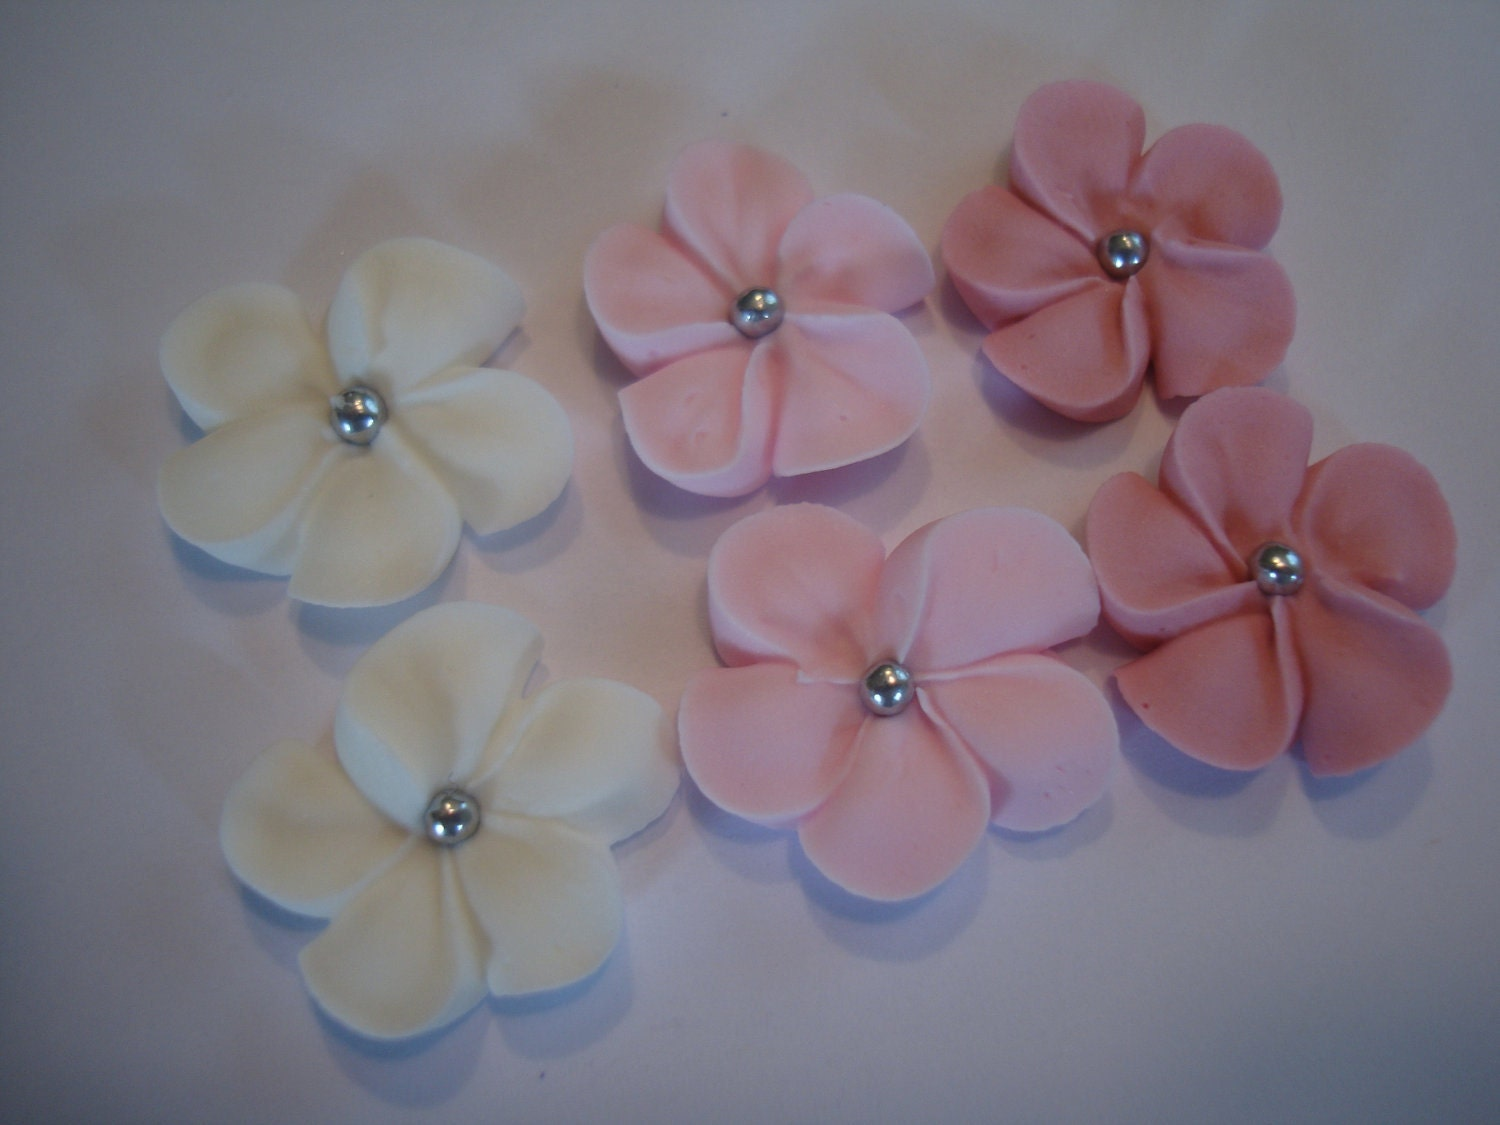 Cake Decoration Icing Sugar : LOT of 100 Royal Icing flowers for Cake Decorating Sugar